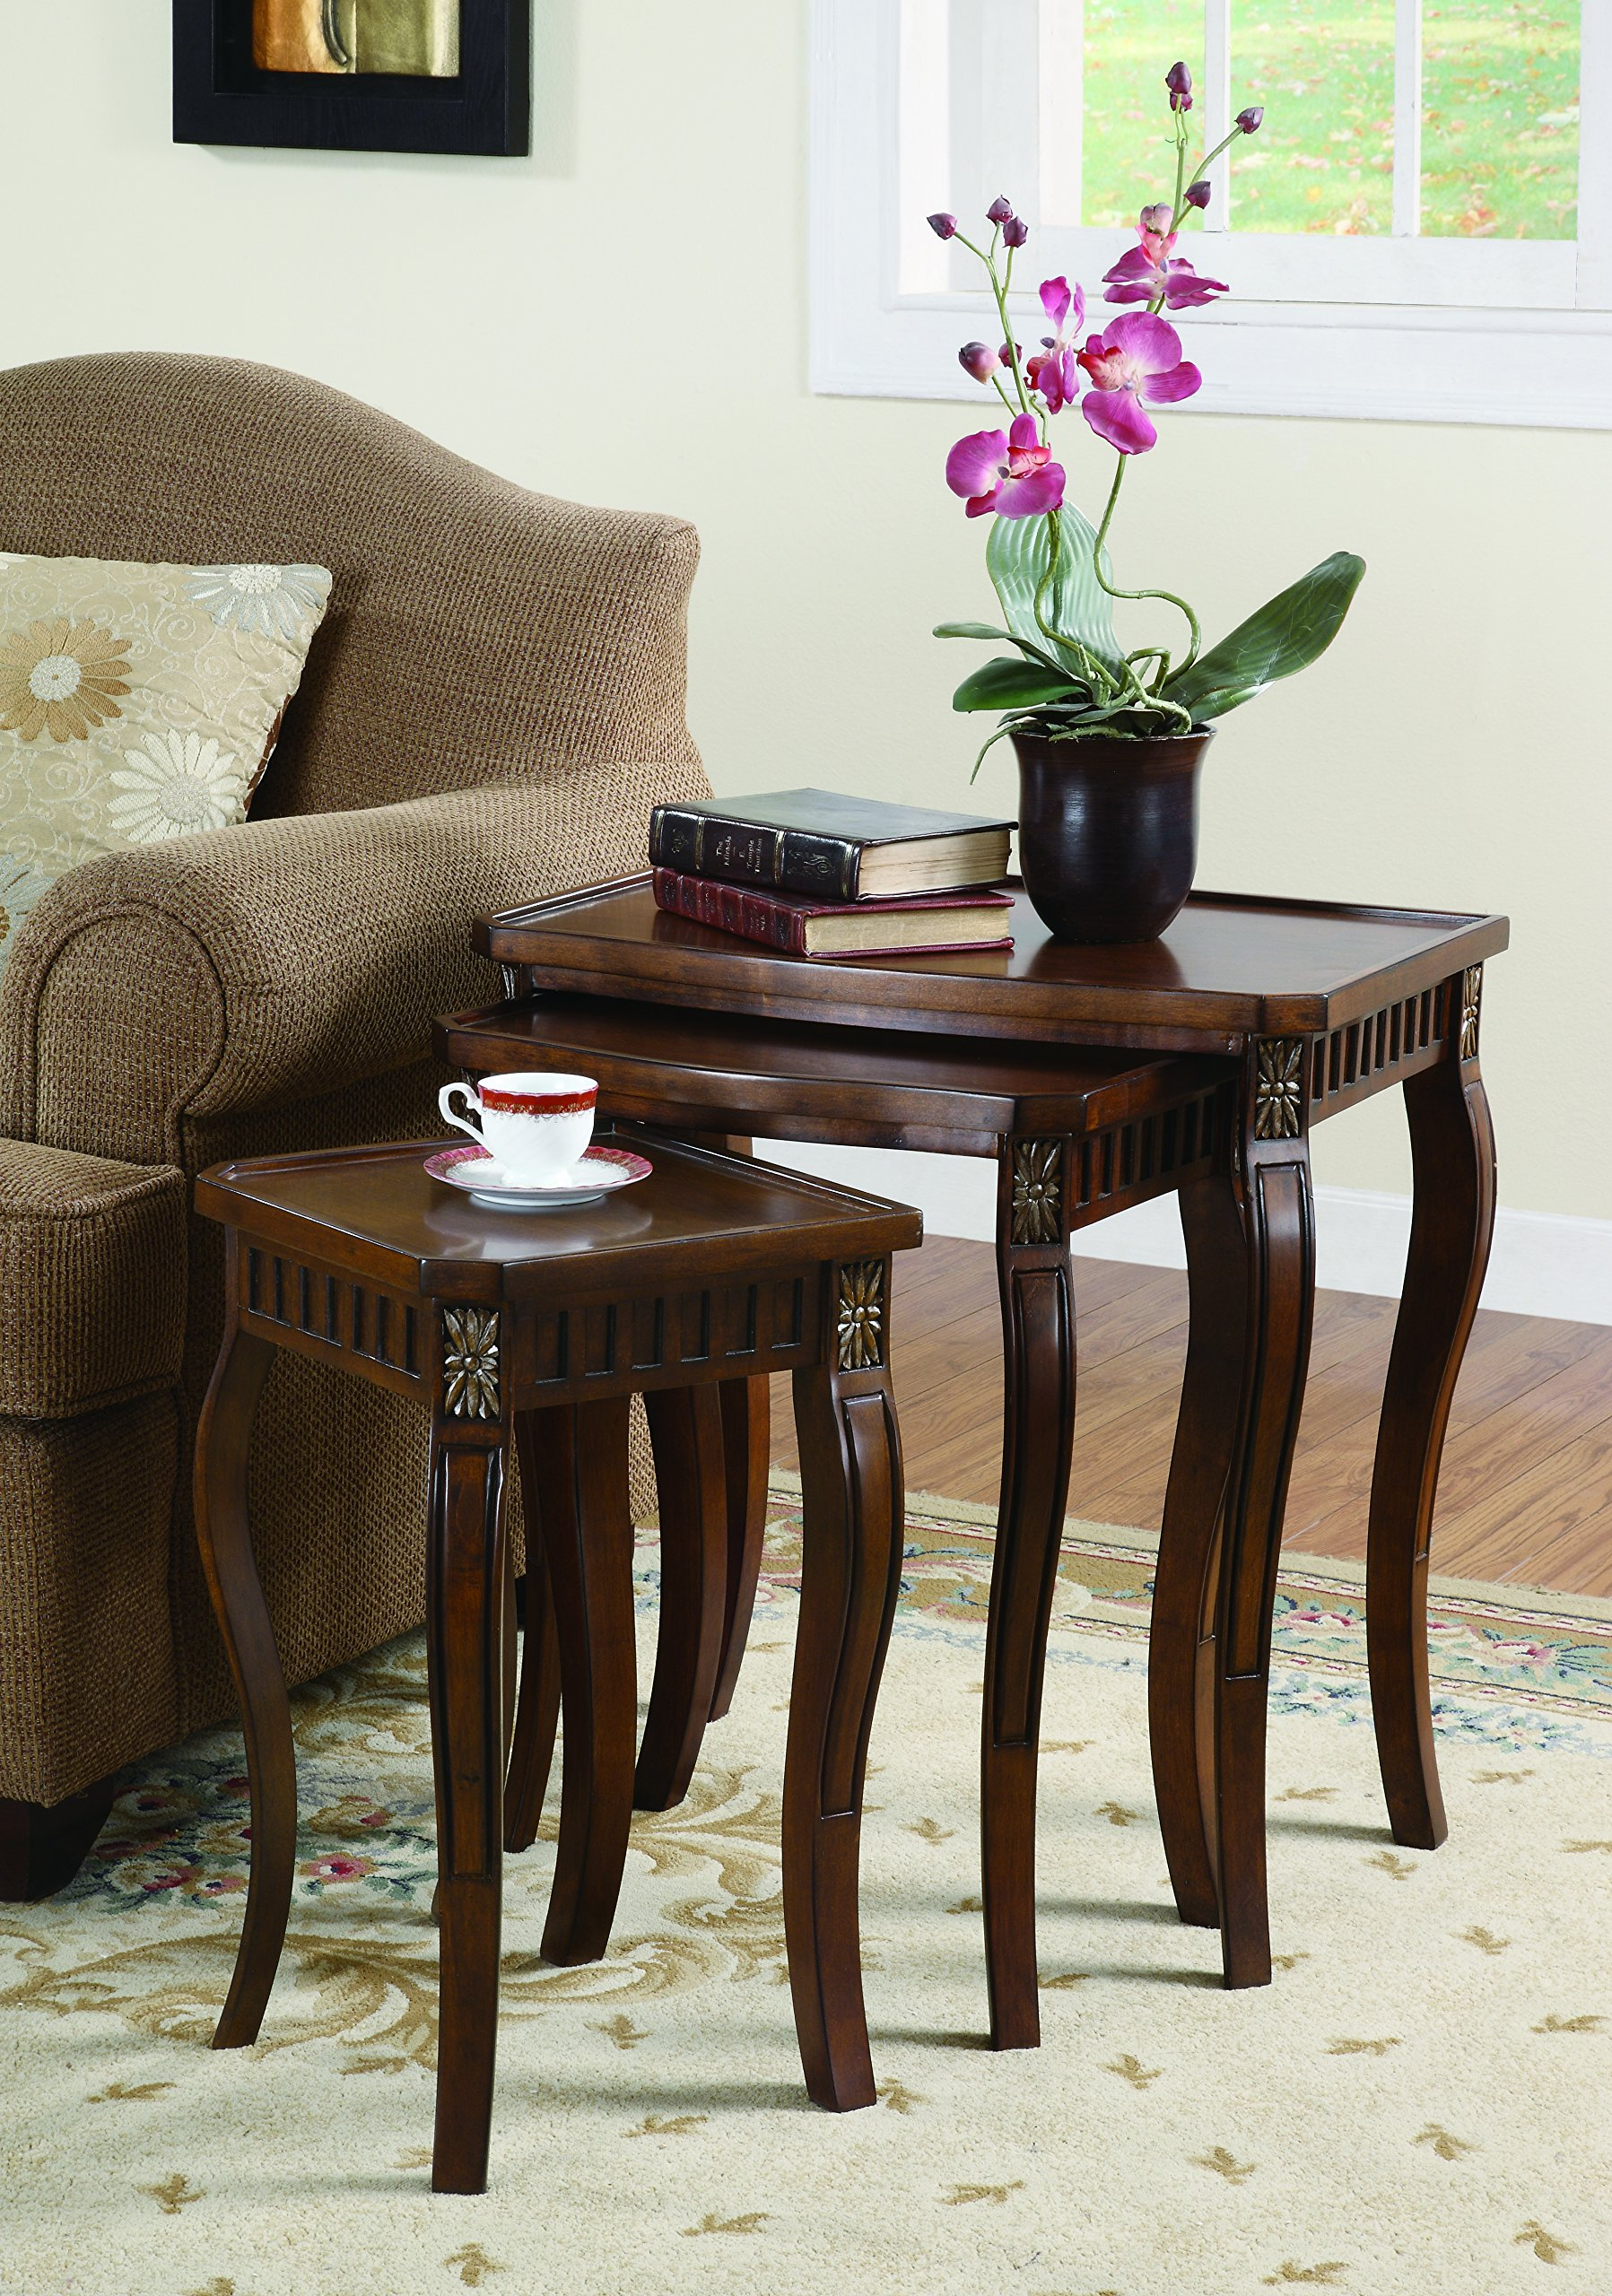 Coaster 901076 3-Piece Curved Leg Nesting Table Set, Brown by Coaster Home Furnishings